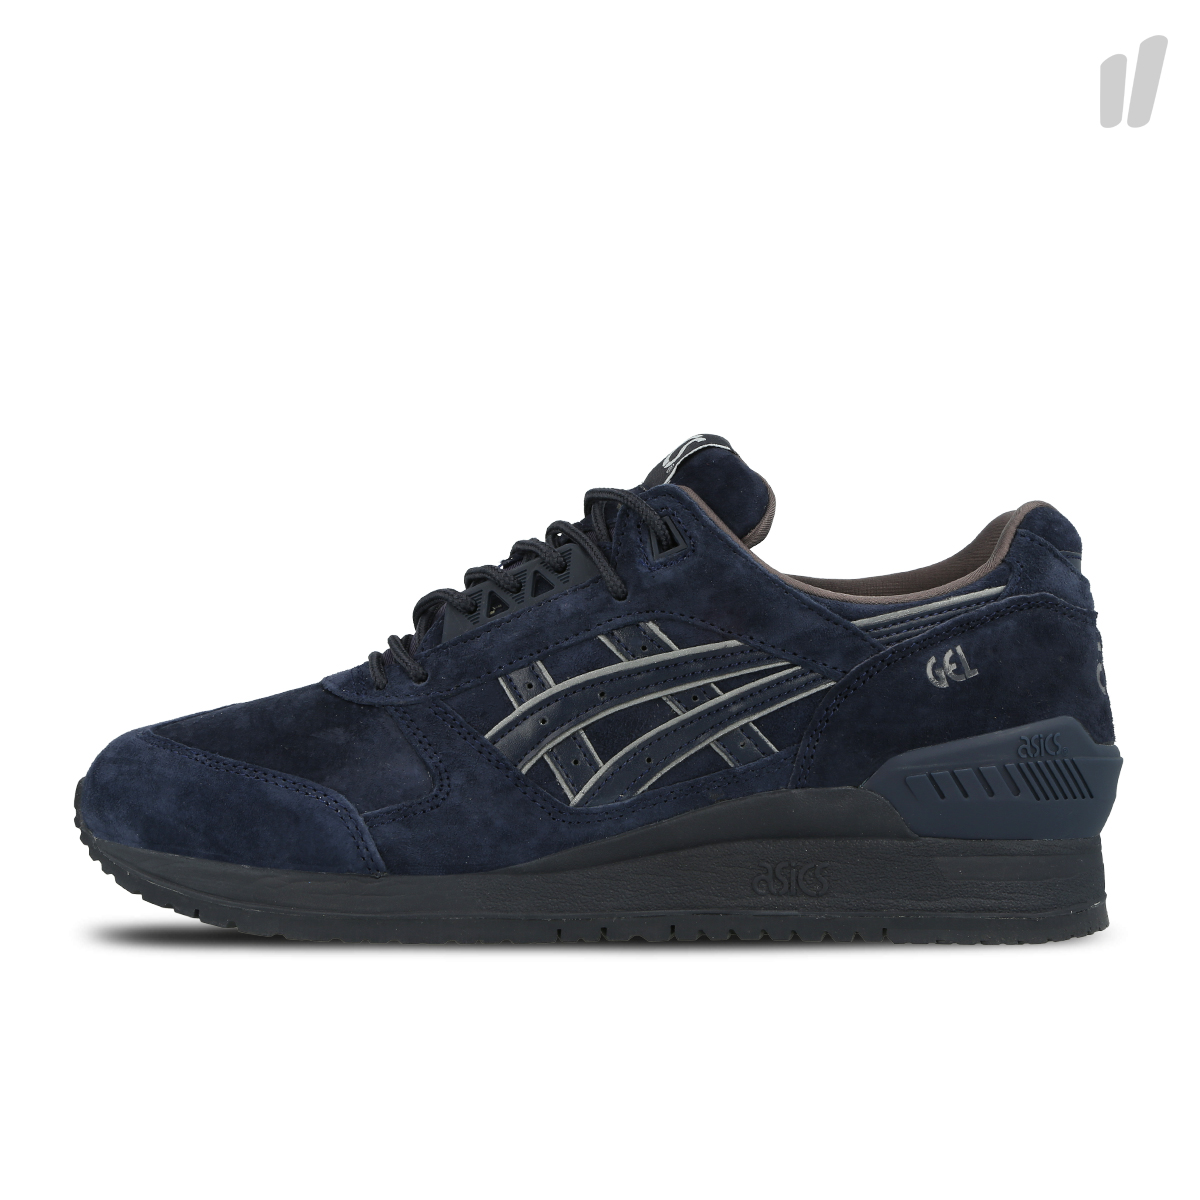 asics gel respector h6b4l 5050 overkill products store. Black Bedroom Furniture Sets. Home Design Ideas